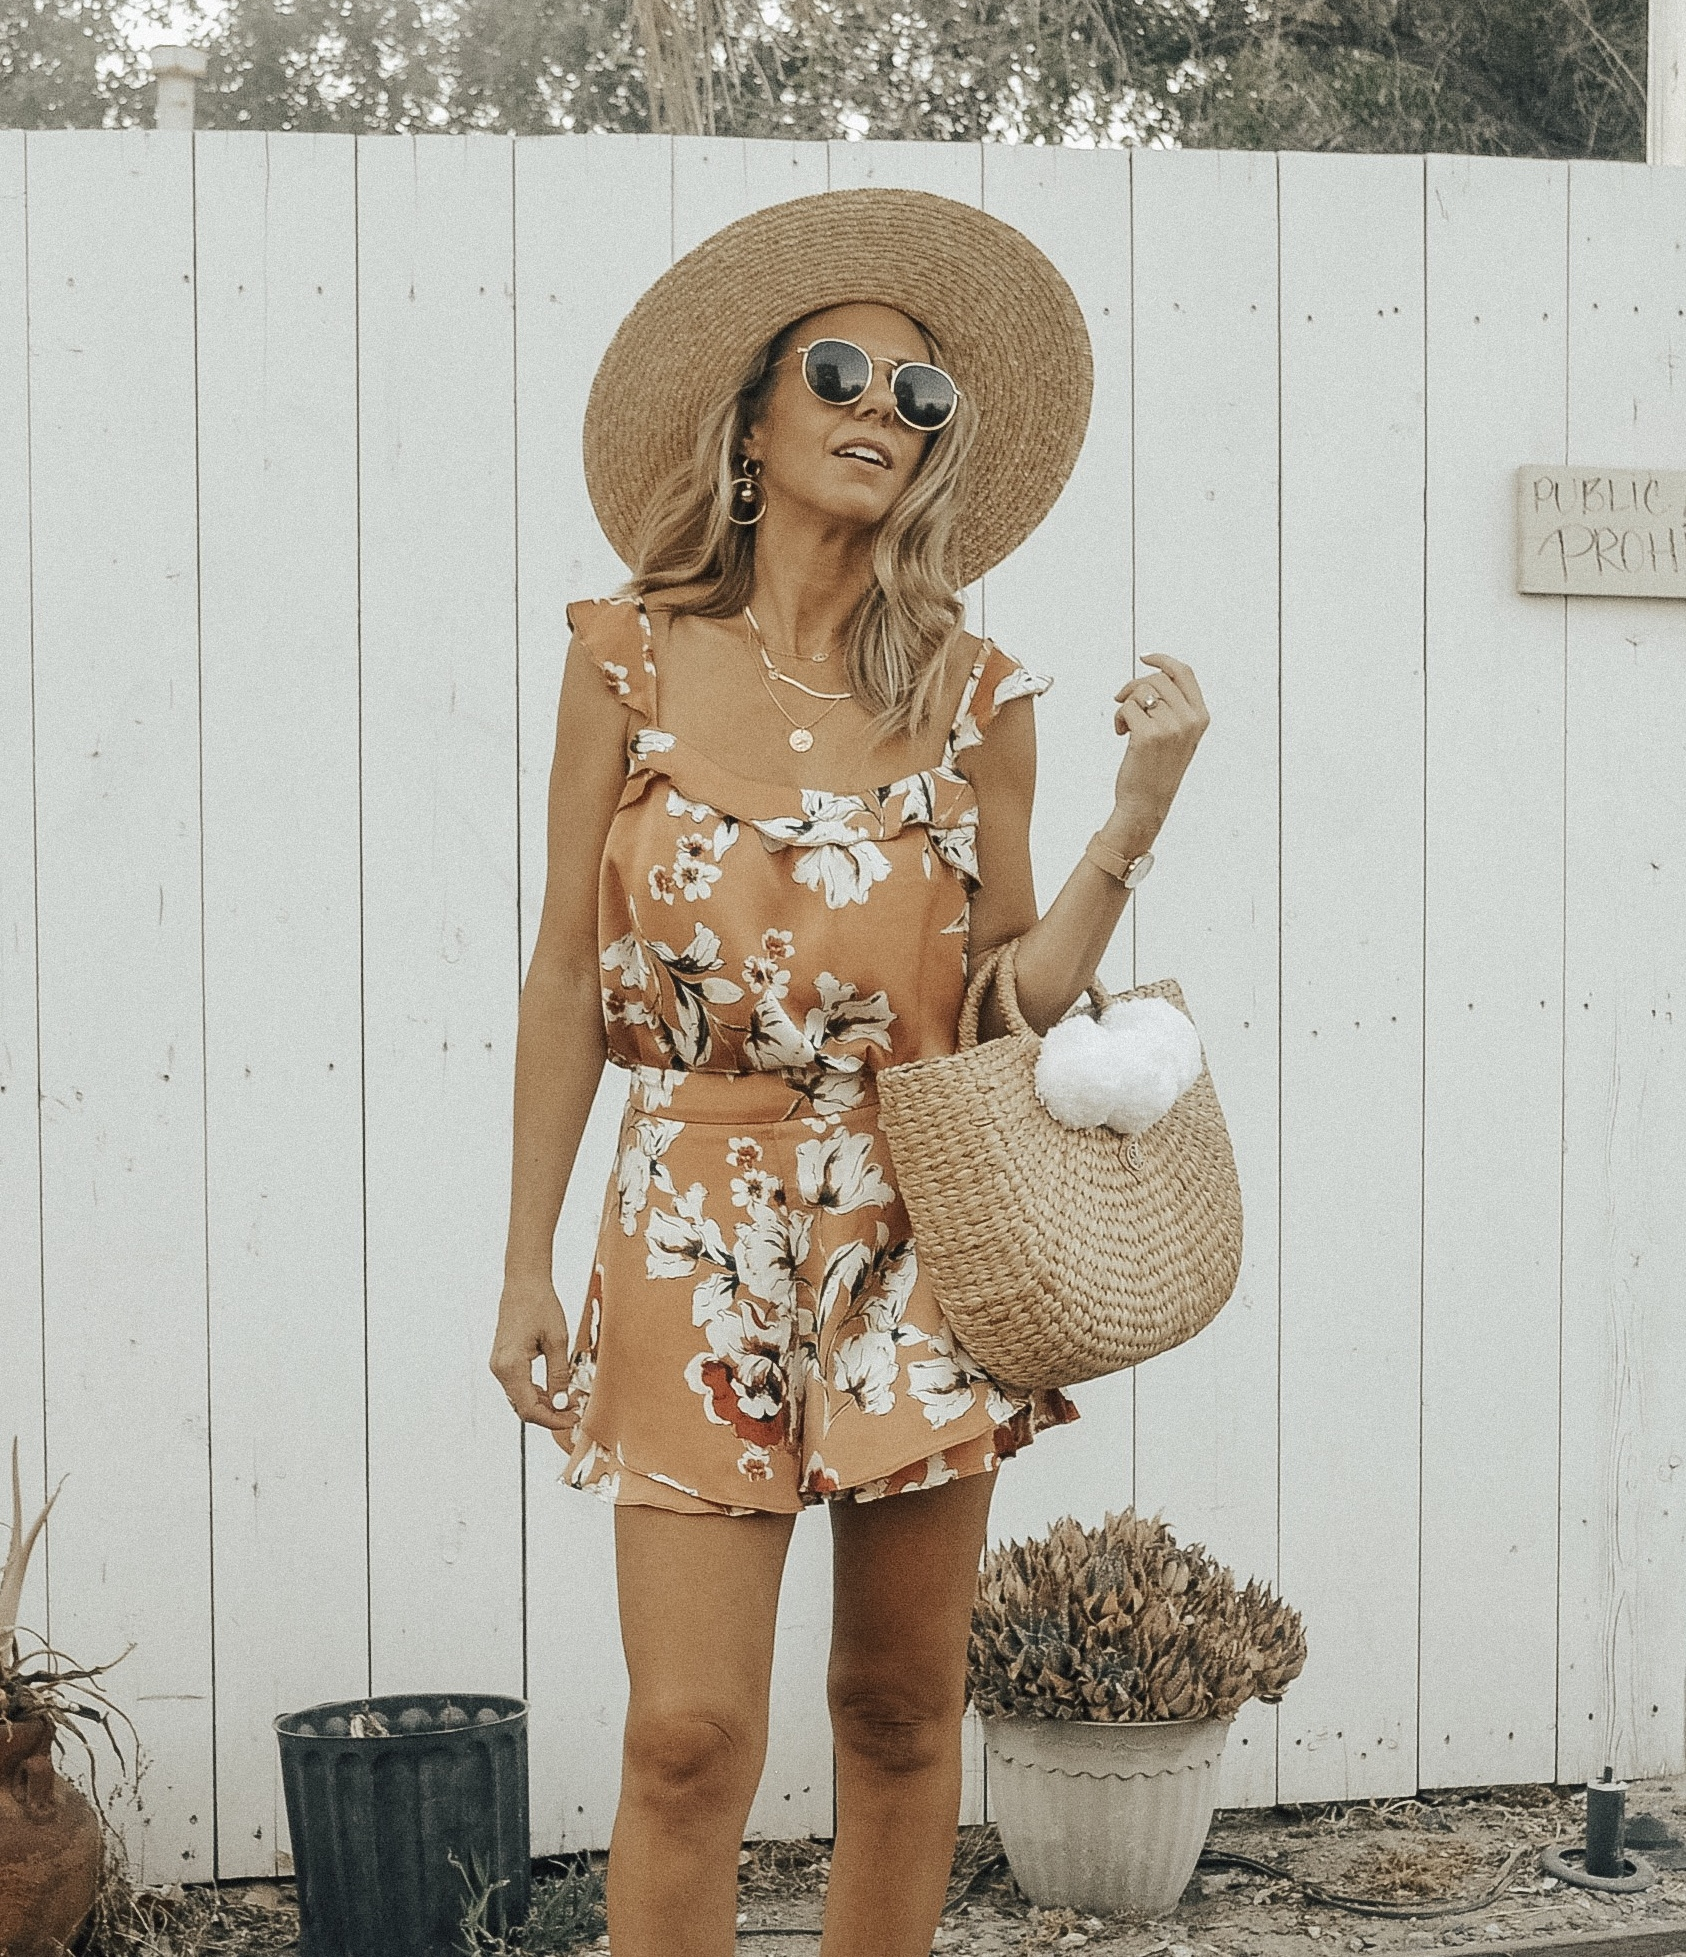 MATCHING SETS WITH BISHOP + YOUNG - Jaclyn De Leon Style + floral ruffle shorts + floral tank top + bohemian + straw bag with pom poms + straw beach hat + summer style + casual street style + boho chic + Nordstrom + Zappos + Versatility of matching sets + mix and match